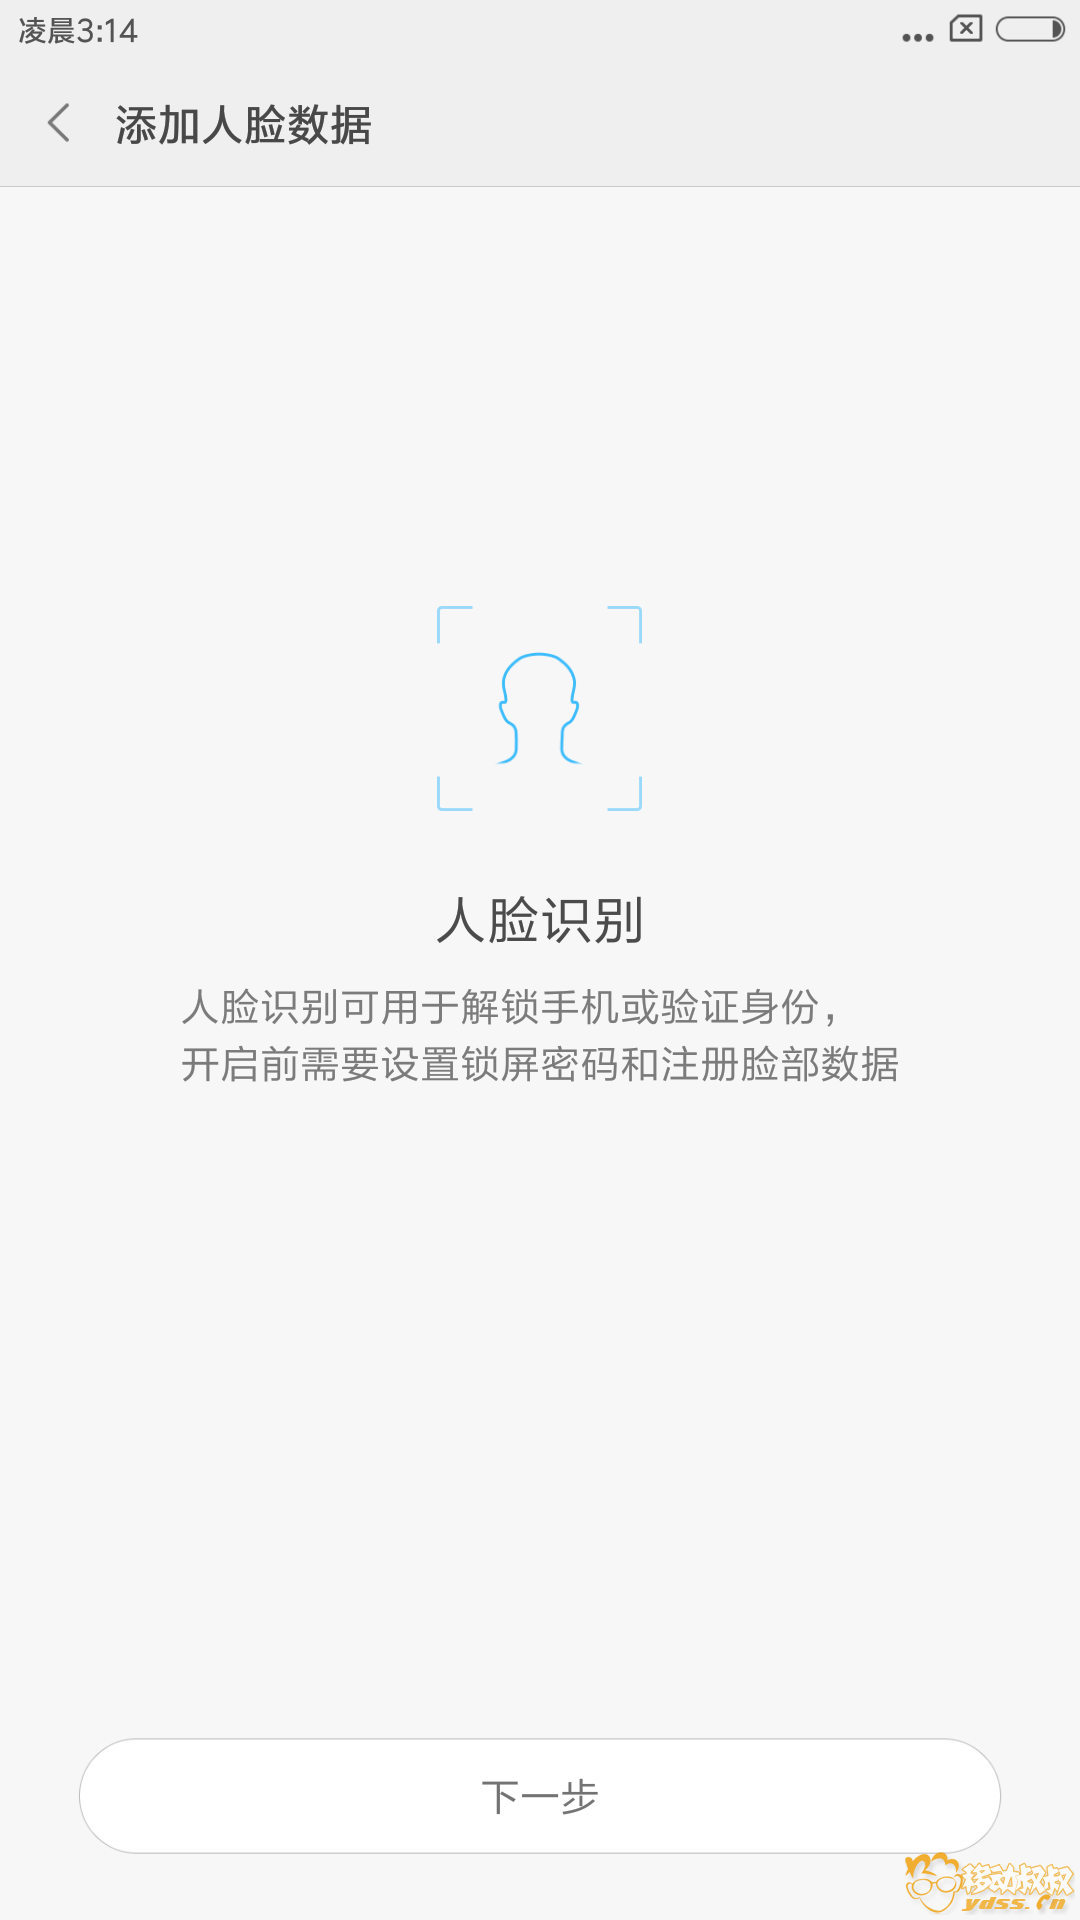 Screenshot_1970-07-01-03-14-20-689_com.android.keyguard.png